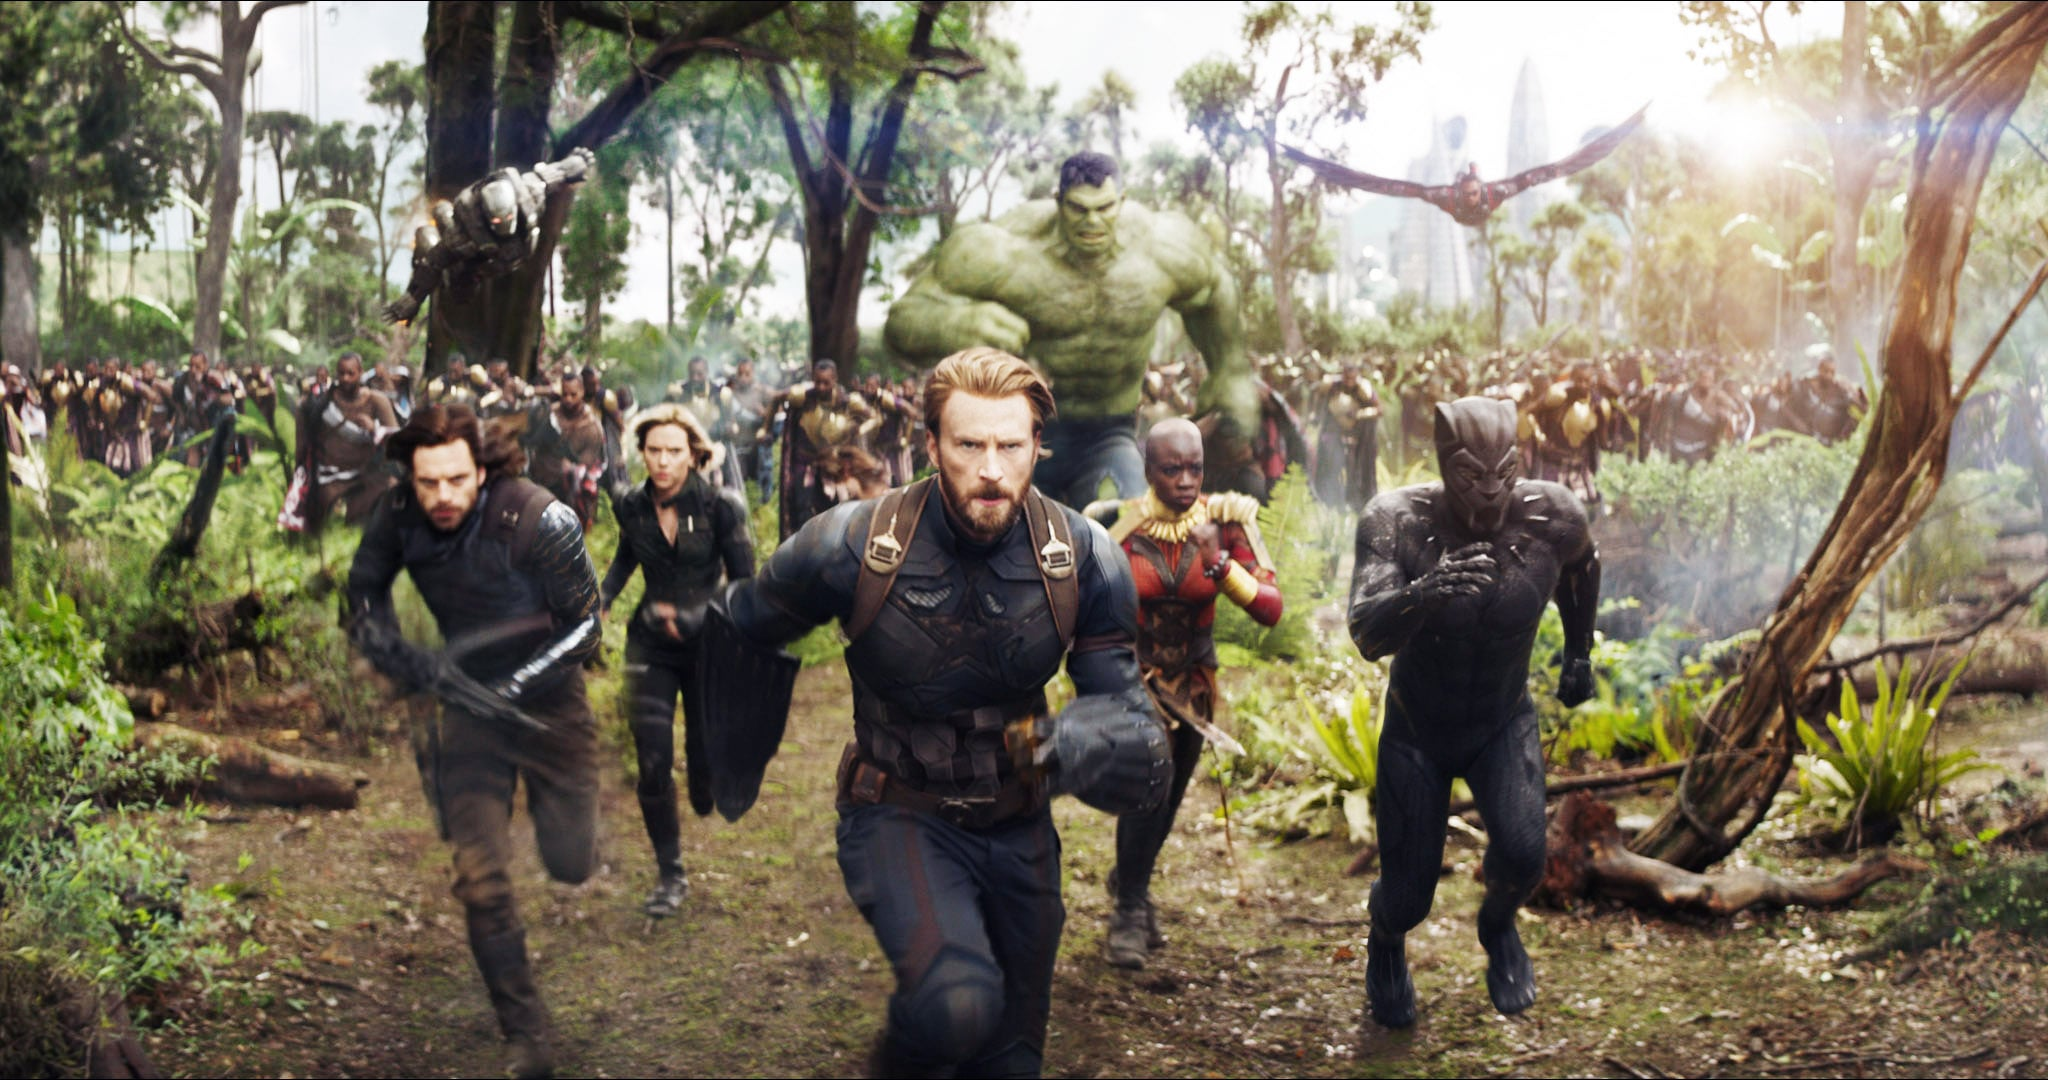 AVENGERS: INFINITY WAR, from left: Don Cheadle as War Machine, Sebastian Stan as Winter Soldier, Scarlett Johansson as Black Widow, Chris Evans as Capt. America, Mark Ruffalo as Hulk, Danai Gurira, top  right: Anthony Mackie as Falcon, Chadwick Boseman as Black Panther, 2018.  Marvel/  Walt Disney Studios Motion Pictures /Courtesy Everett Collection